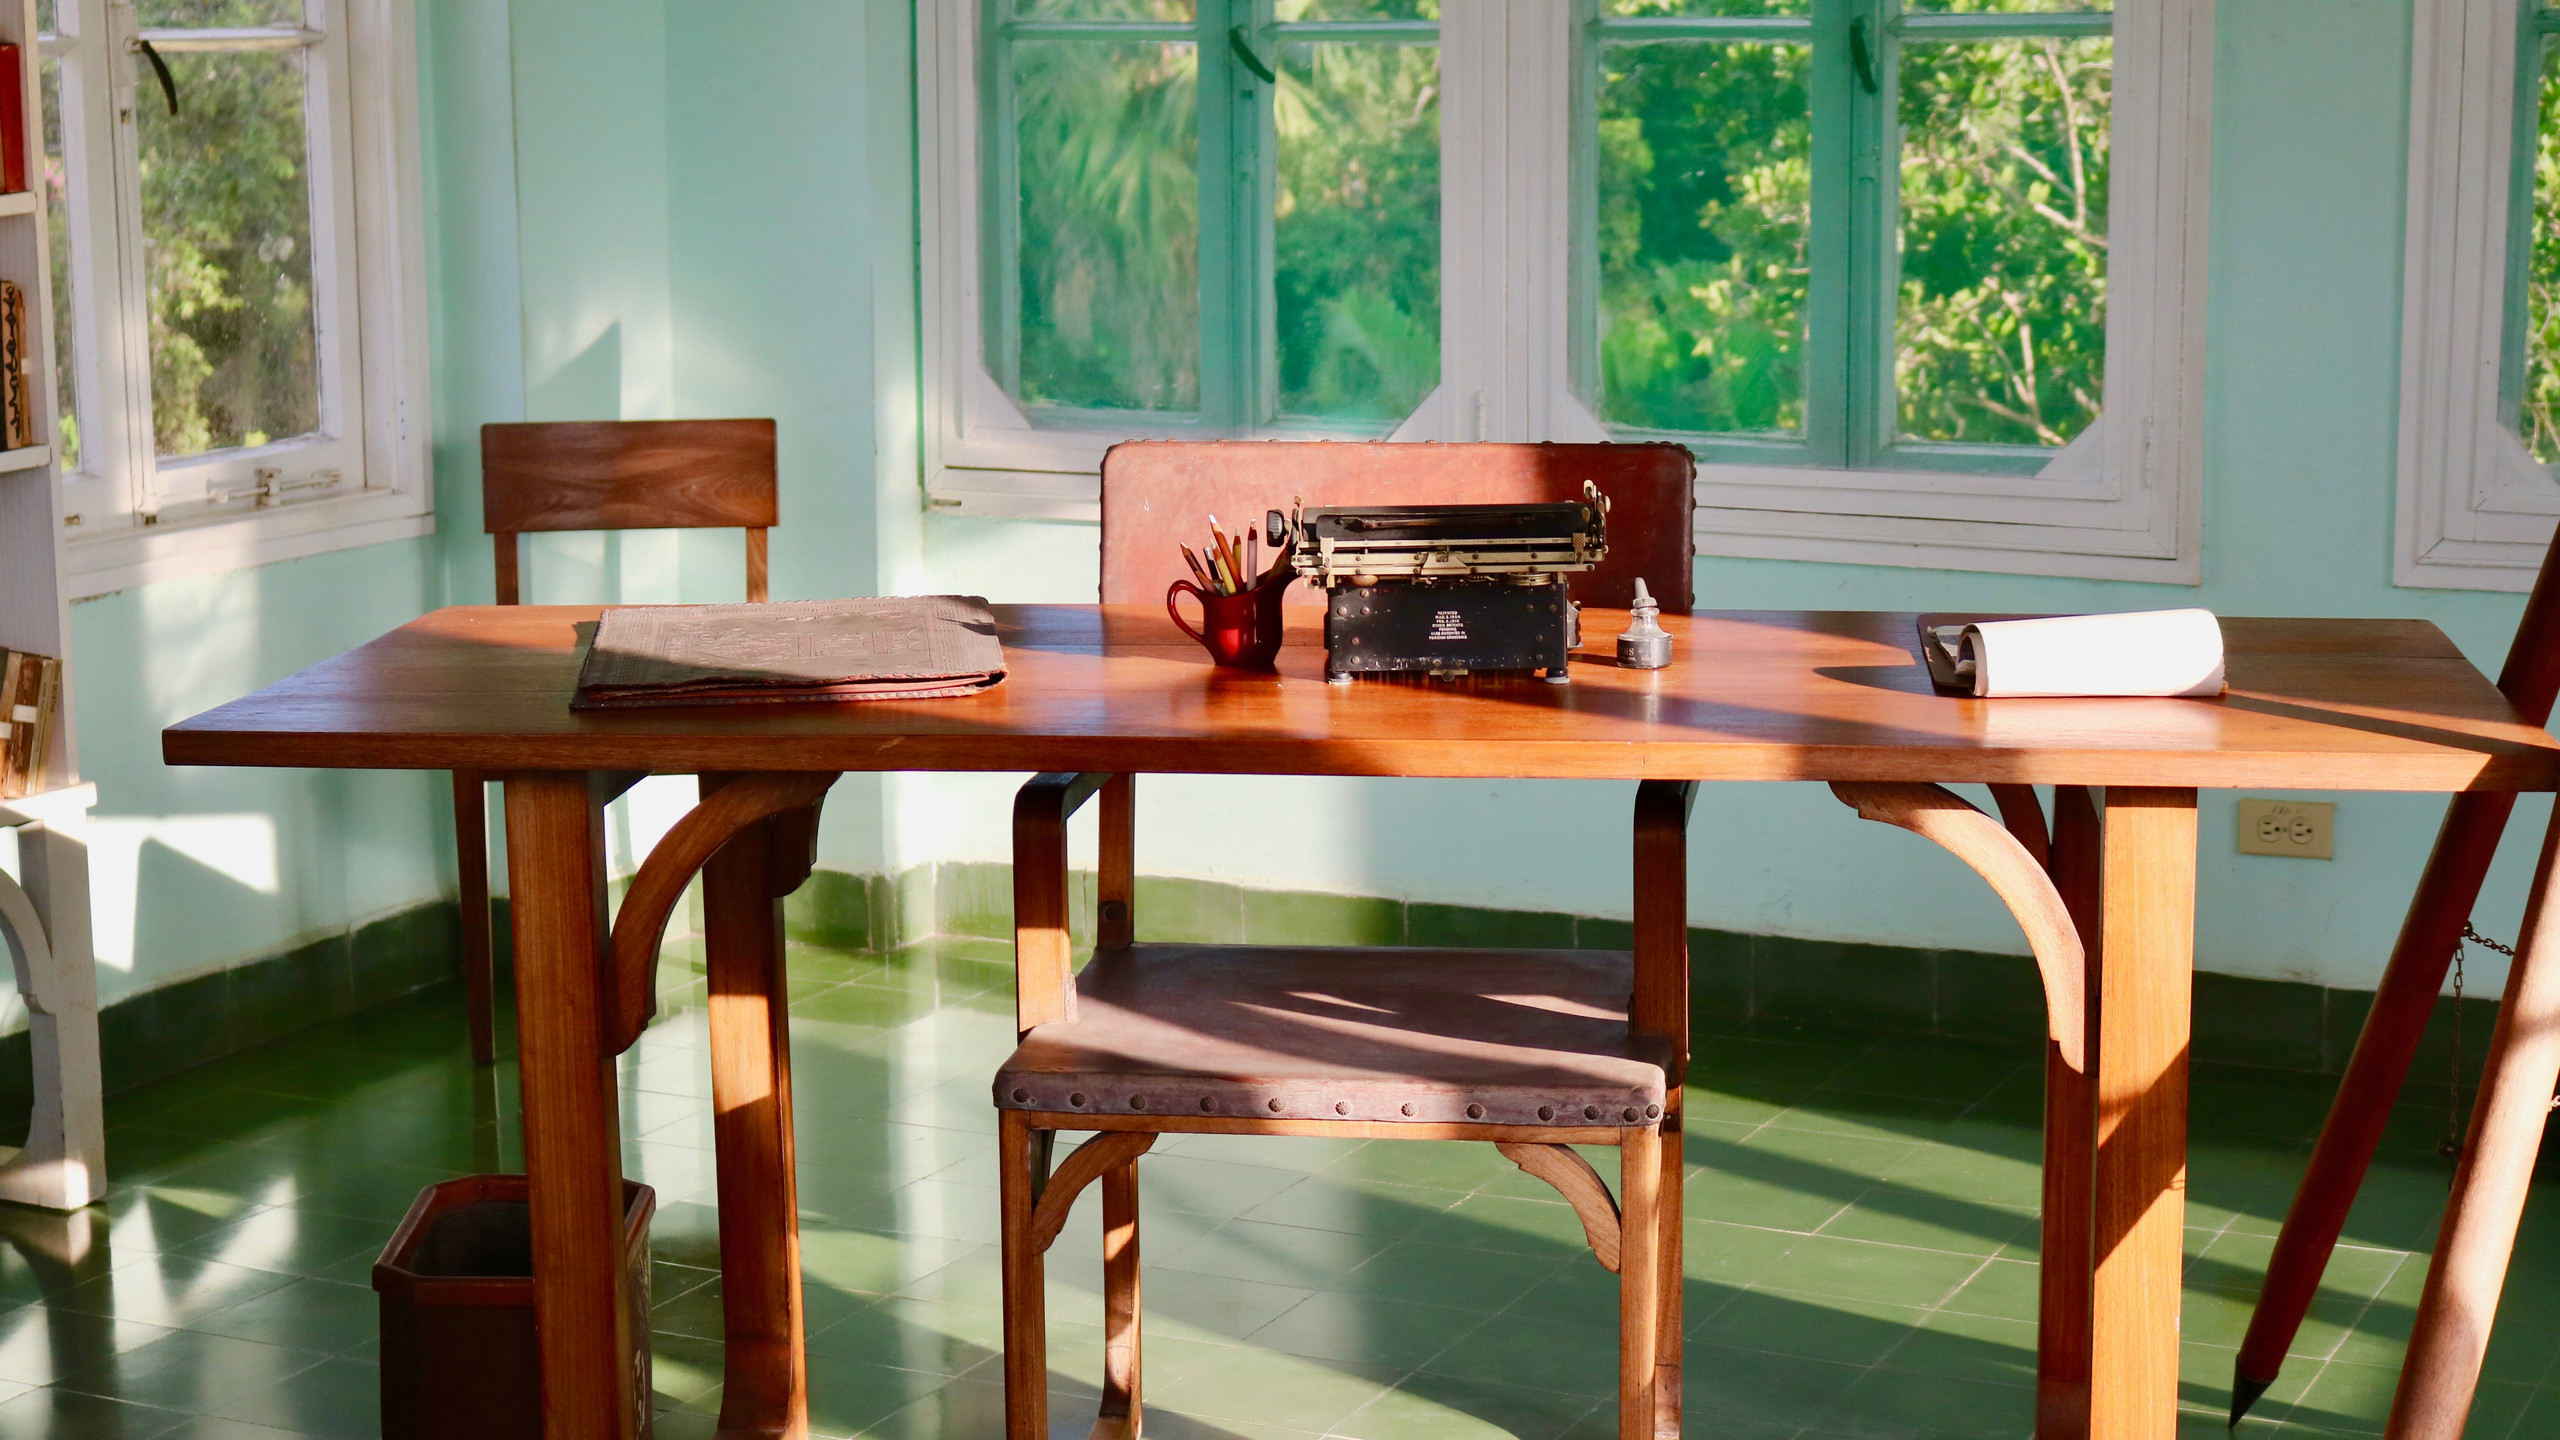 Ernest Hemingway's writing desk and typewriter in lookout tower at Finca Vigia outside of Havana, Cuba.